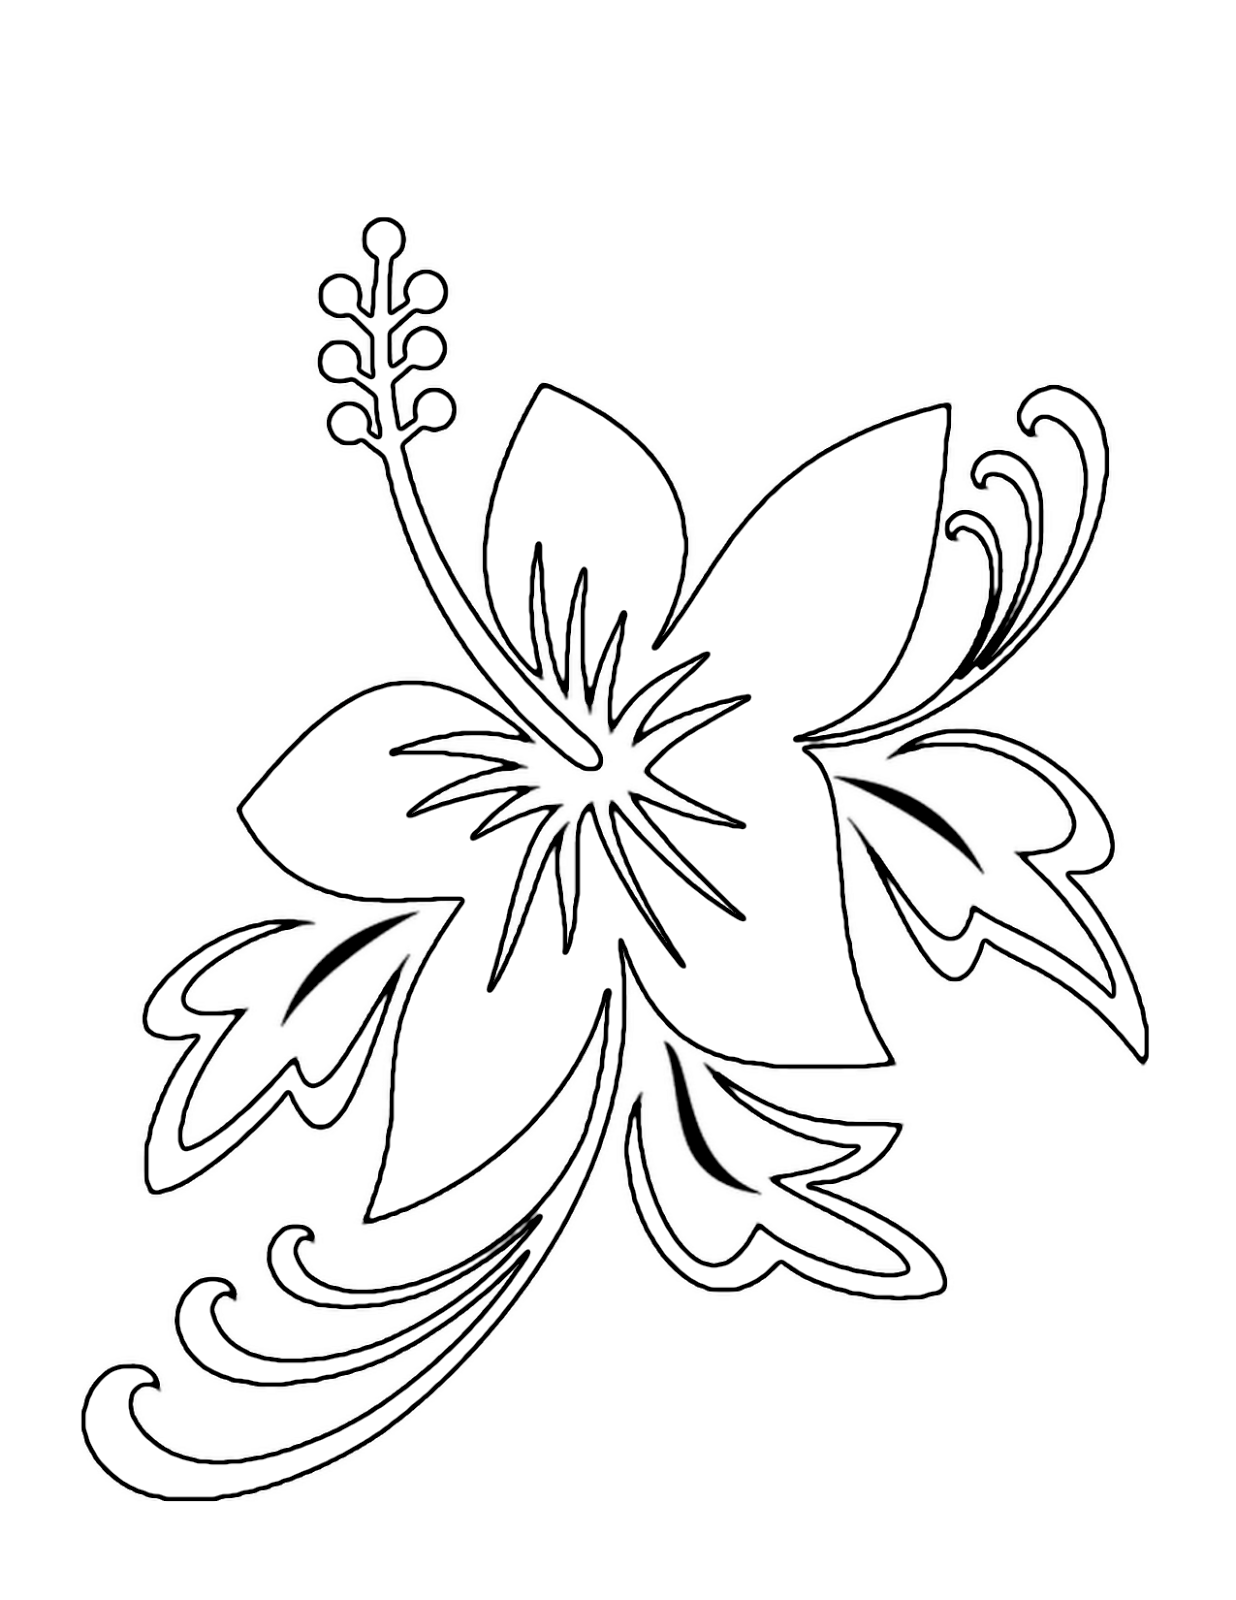 flower coloring pages printables flower coloring pages printables printables pages flower coloring